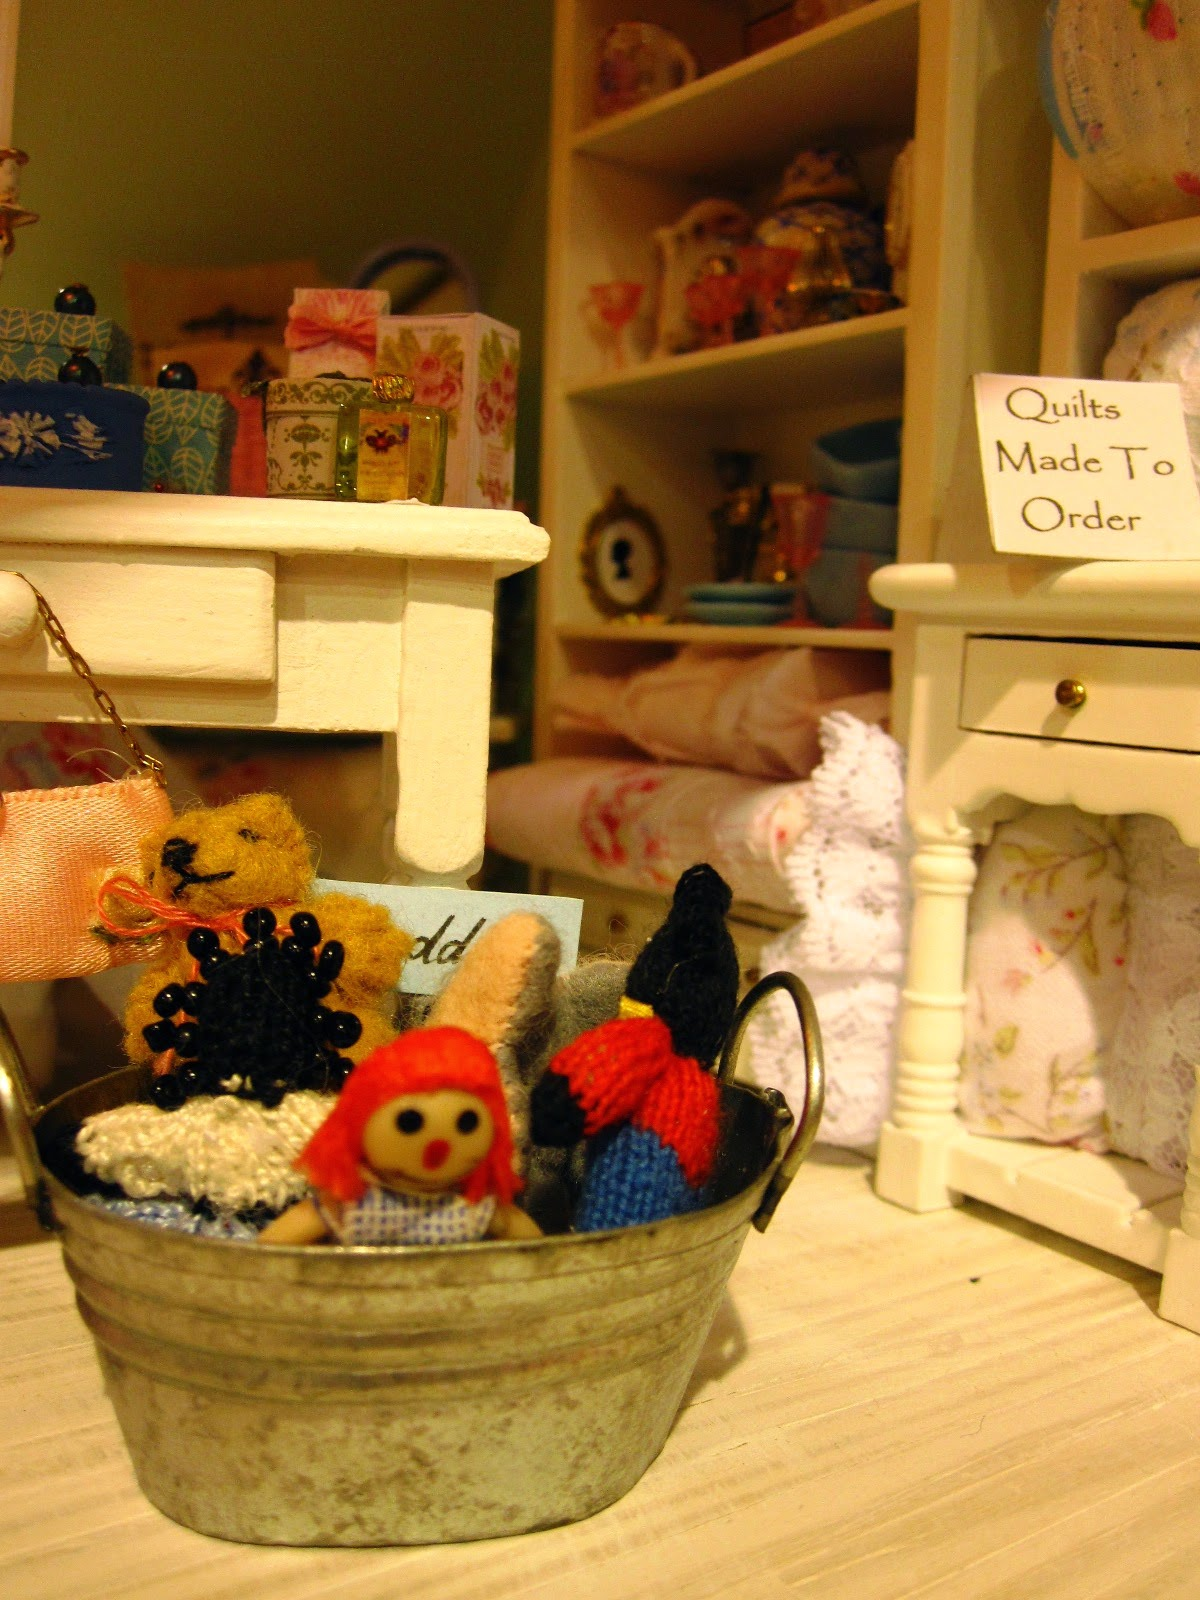 Modern miniature shabby chic shop display of soft toys in a tin tub on the floor, with a display of quilts on cream shelves behind.